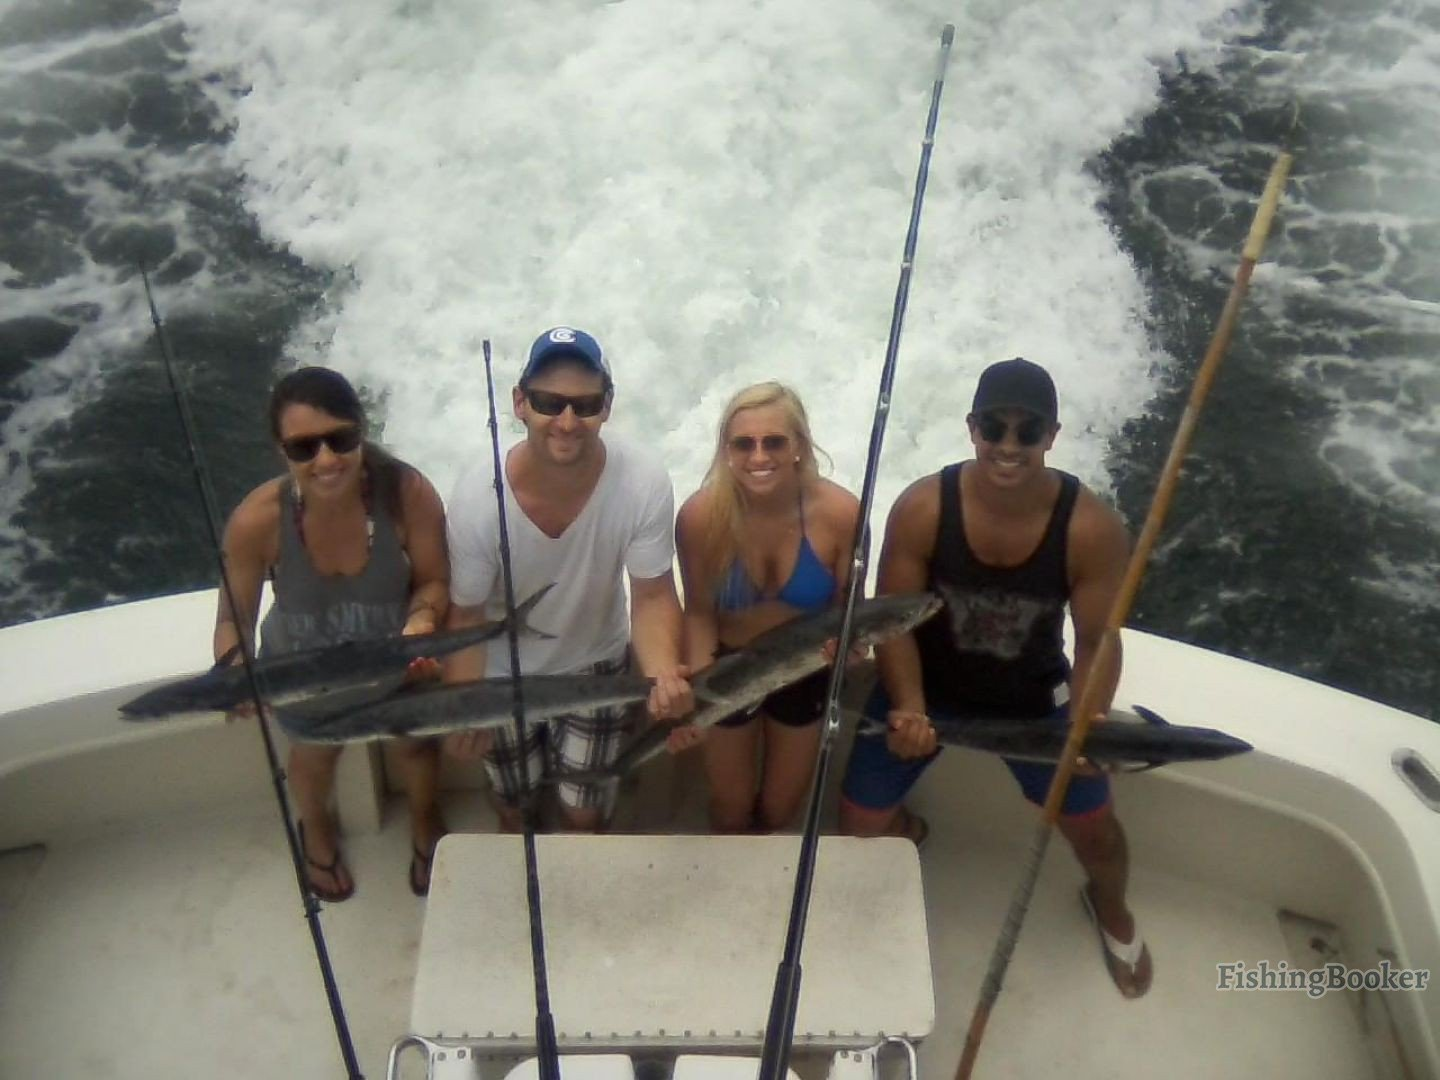 Fishing charters in ft lauderdale fort lauderdale for Fort lauderdale fishing charters